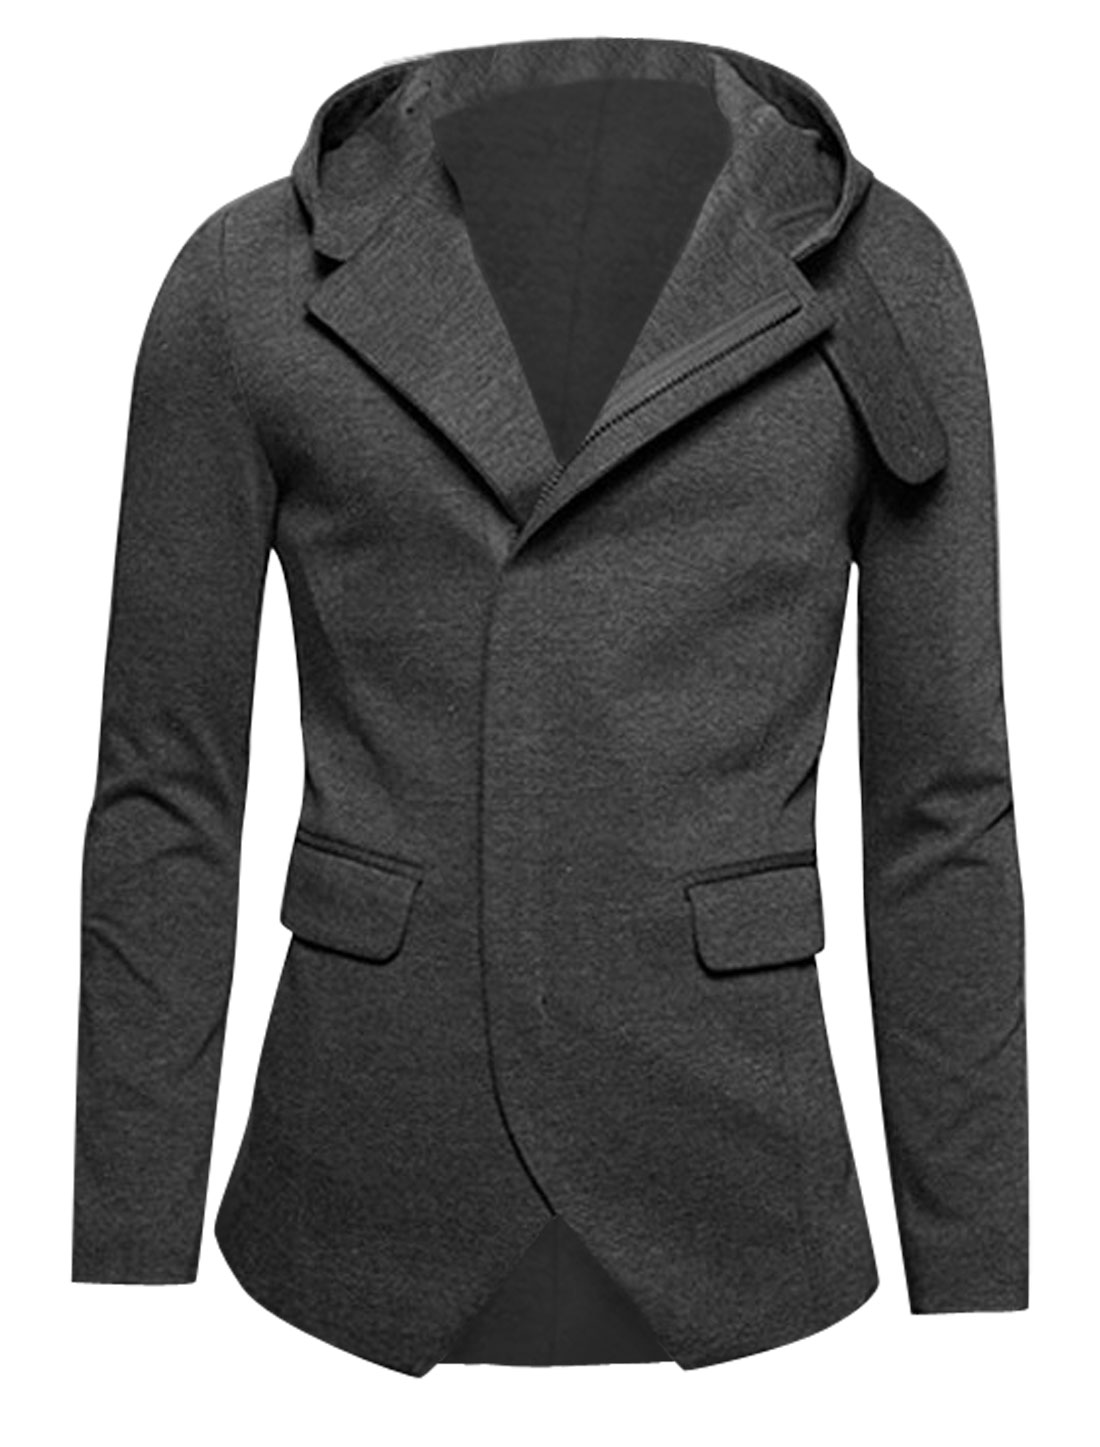 Men Zip Closure Split Back Chic Hooded Jacket Dark Gray M